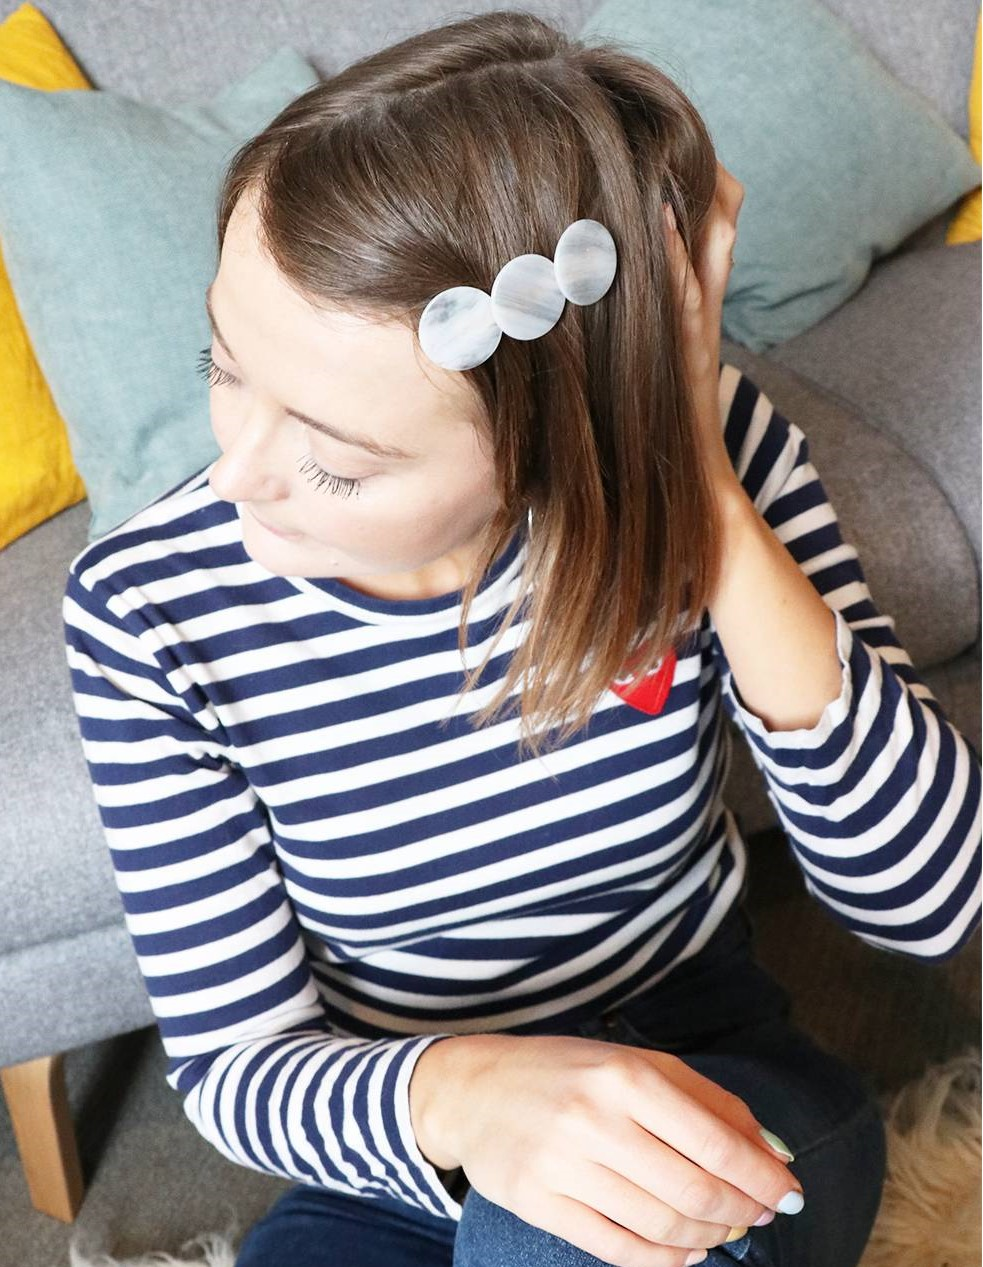 one-side-how-to-style-hair-accessories-clip-barrettes-pearl-deepsidepart.jpg